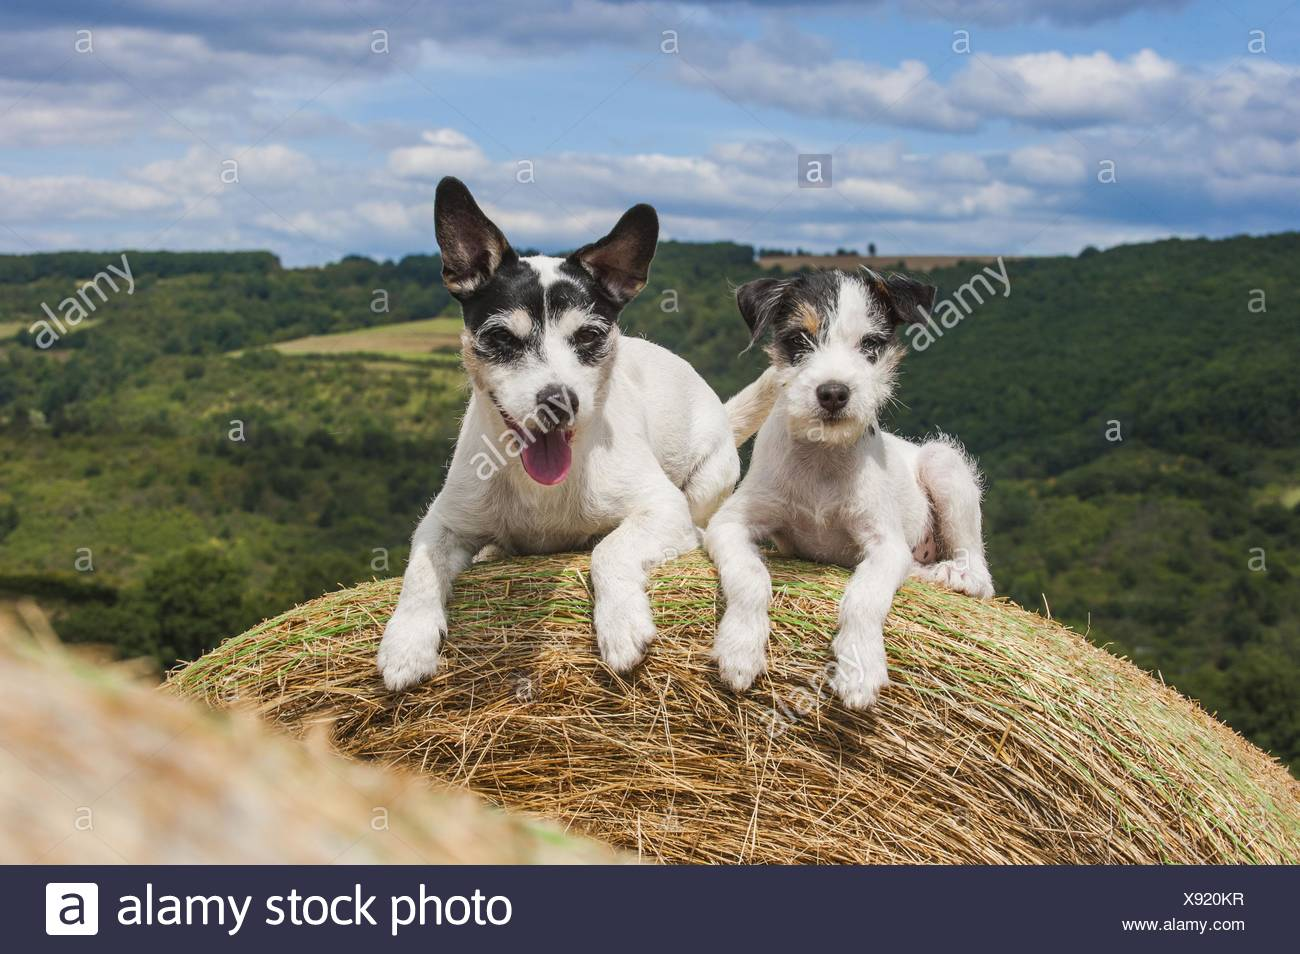 2 Parson Russell Terriers - Stock Image